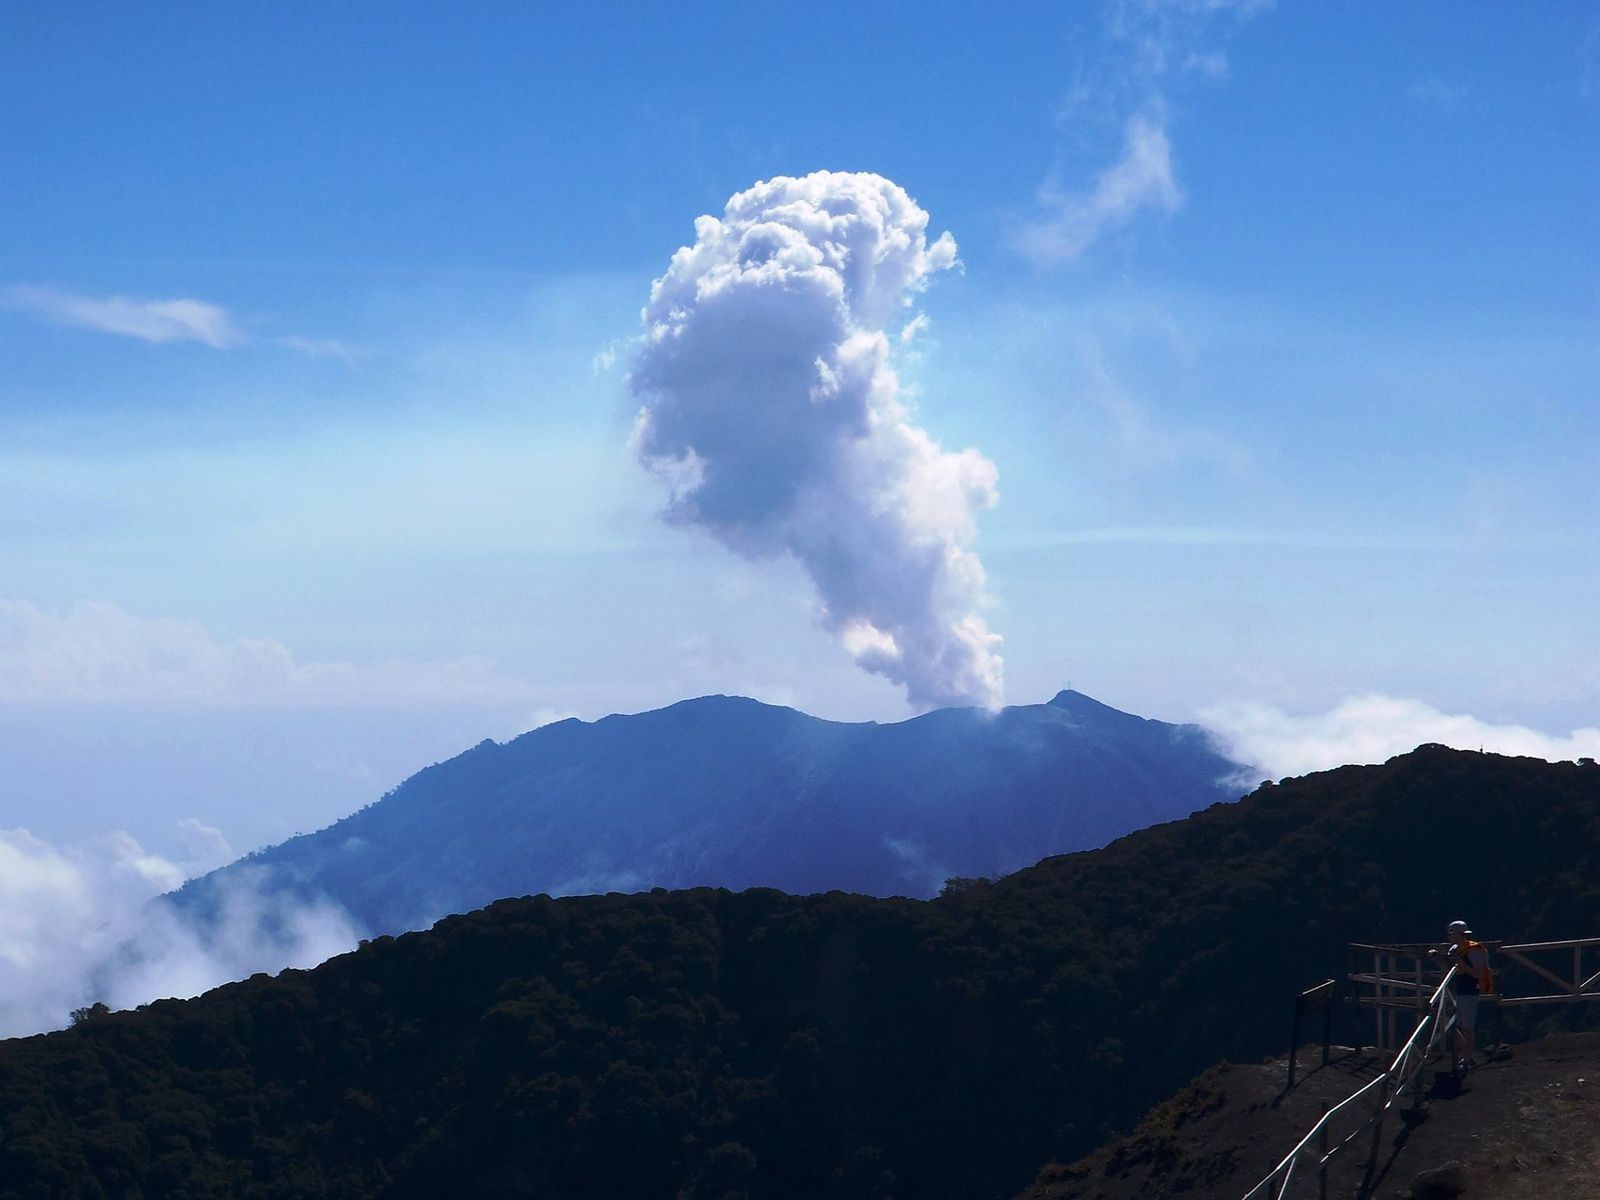 Plume of the Turrialba, seen from the volcano Irazu the 13.04.2017 - photo vulcanólogo Gerardo Soto of the RSN.